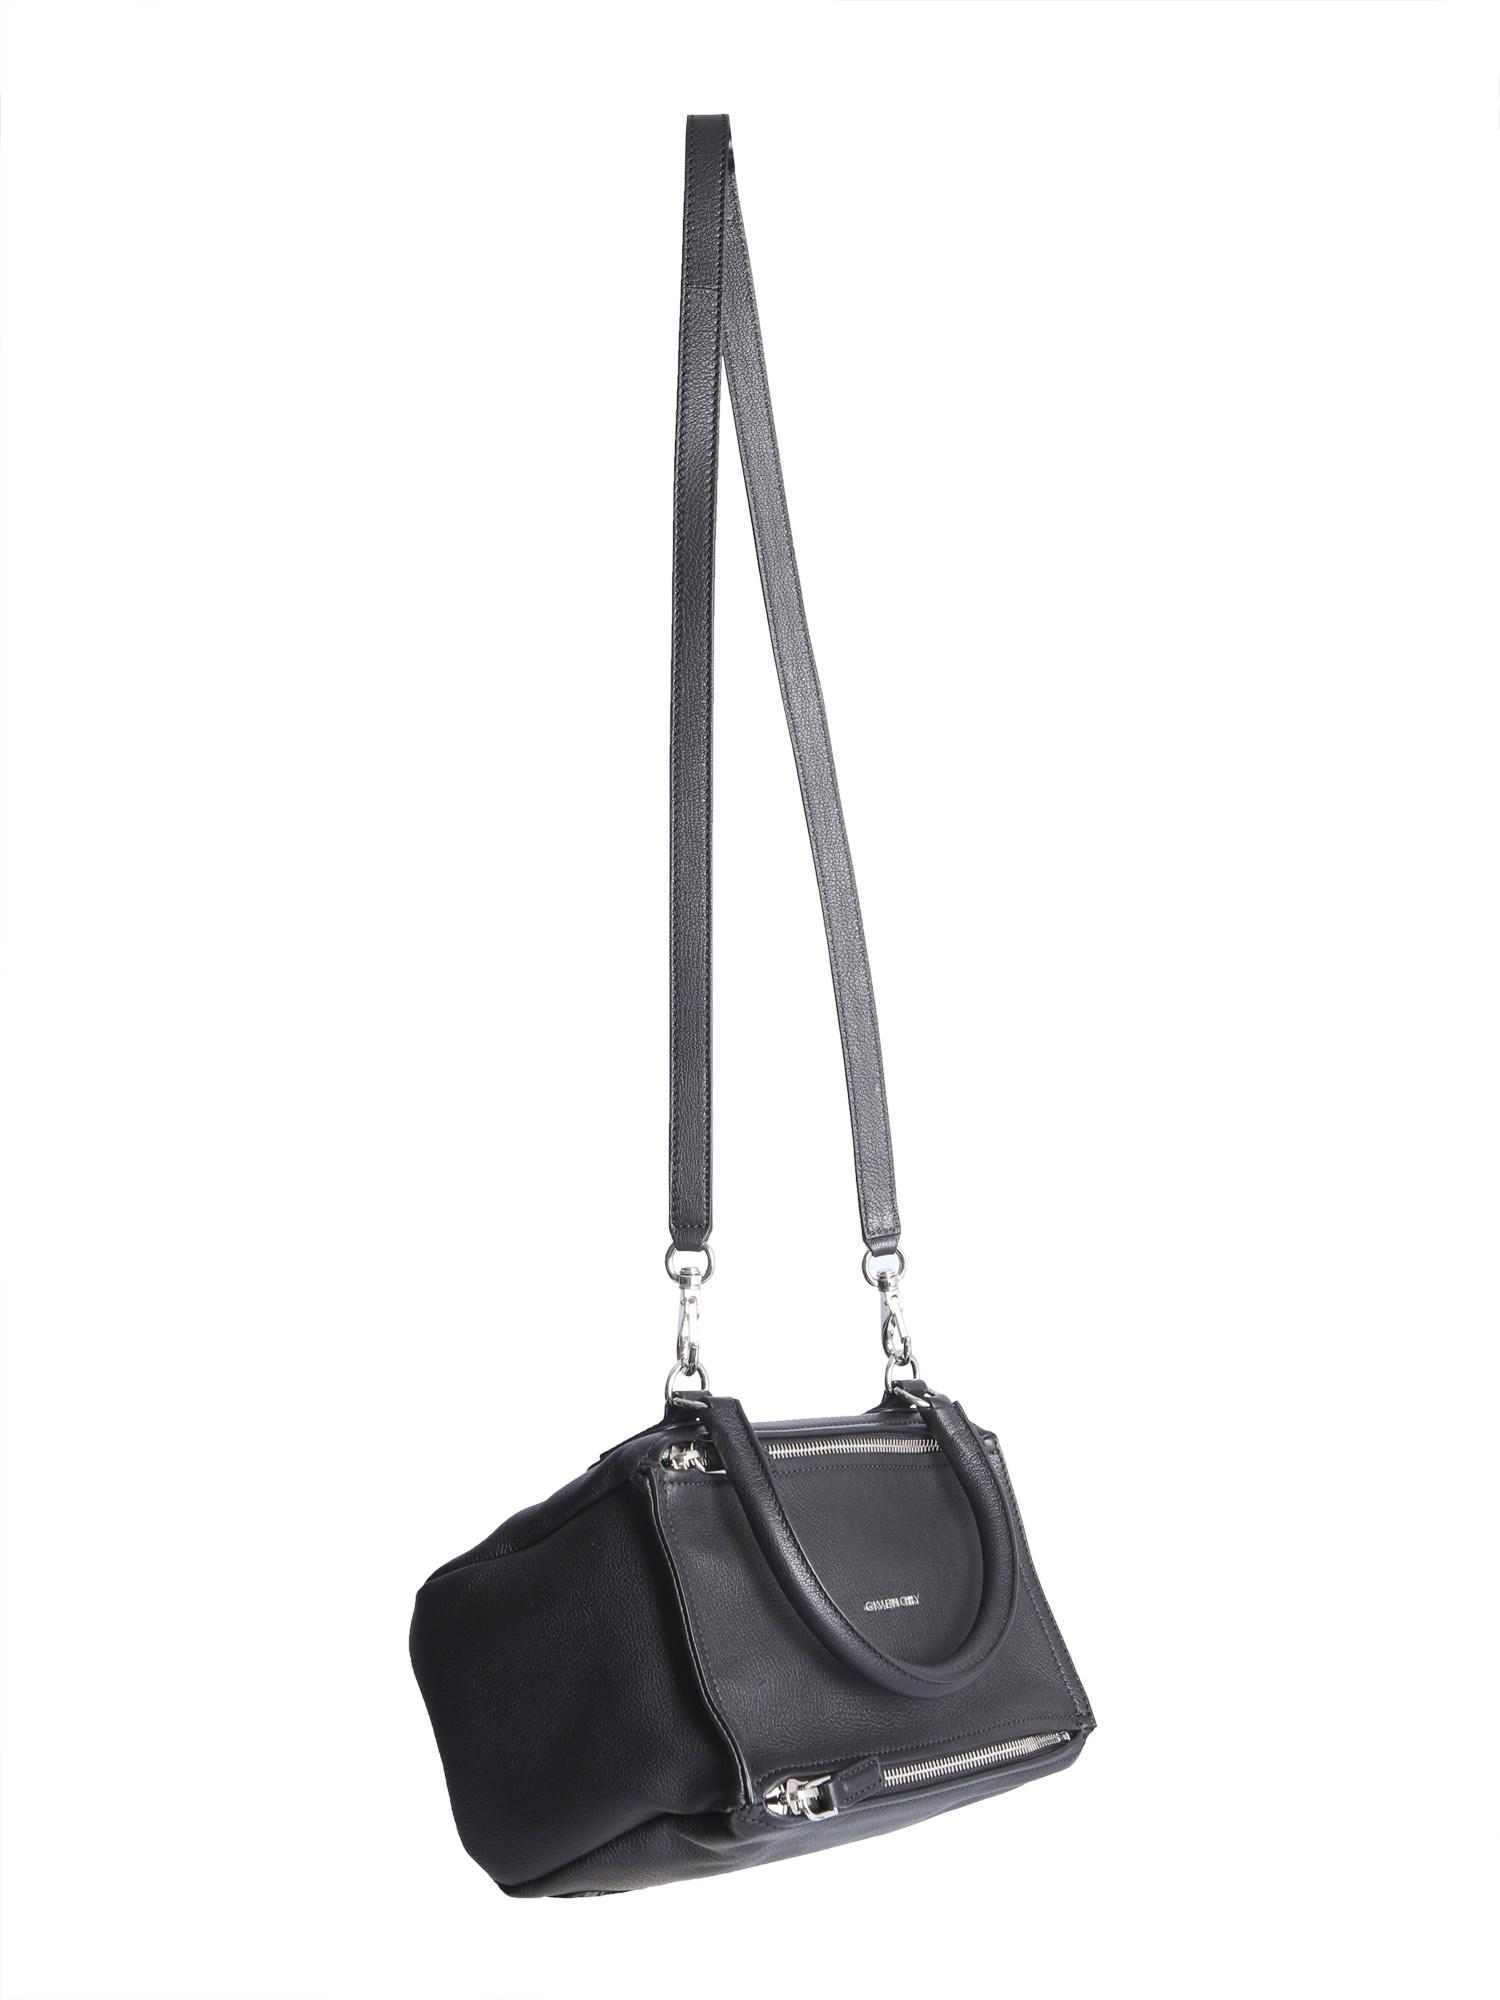 b889ff0354d Givenchy - Black Small Pandora Bag In Hammered Leather - Lyst. View  fullscreen